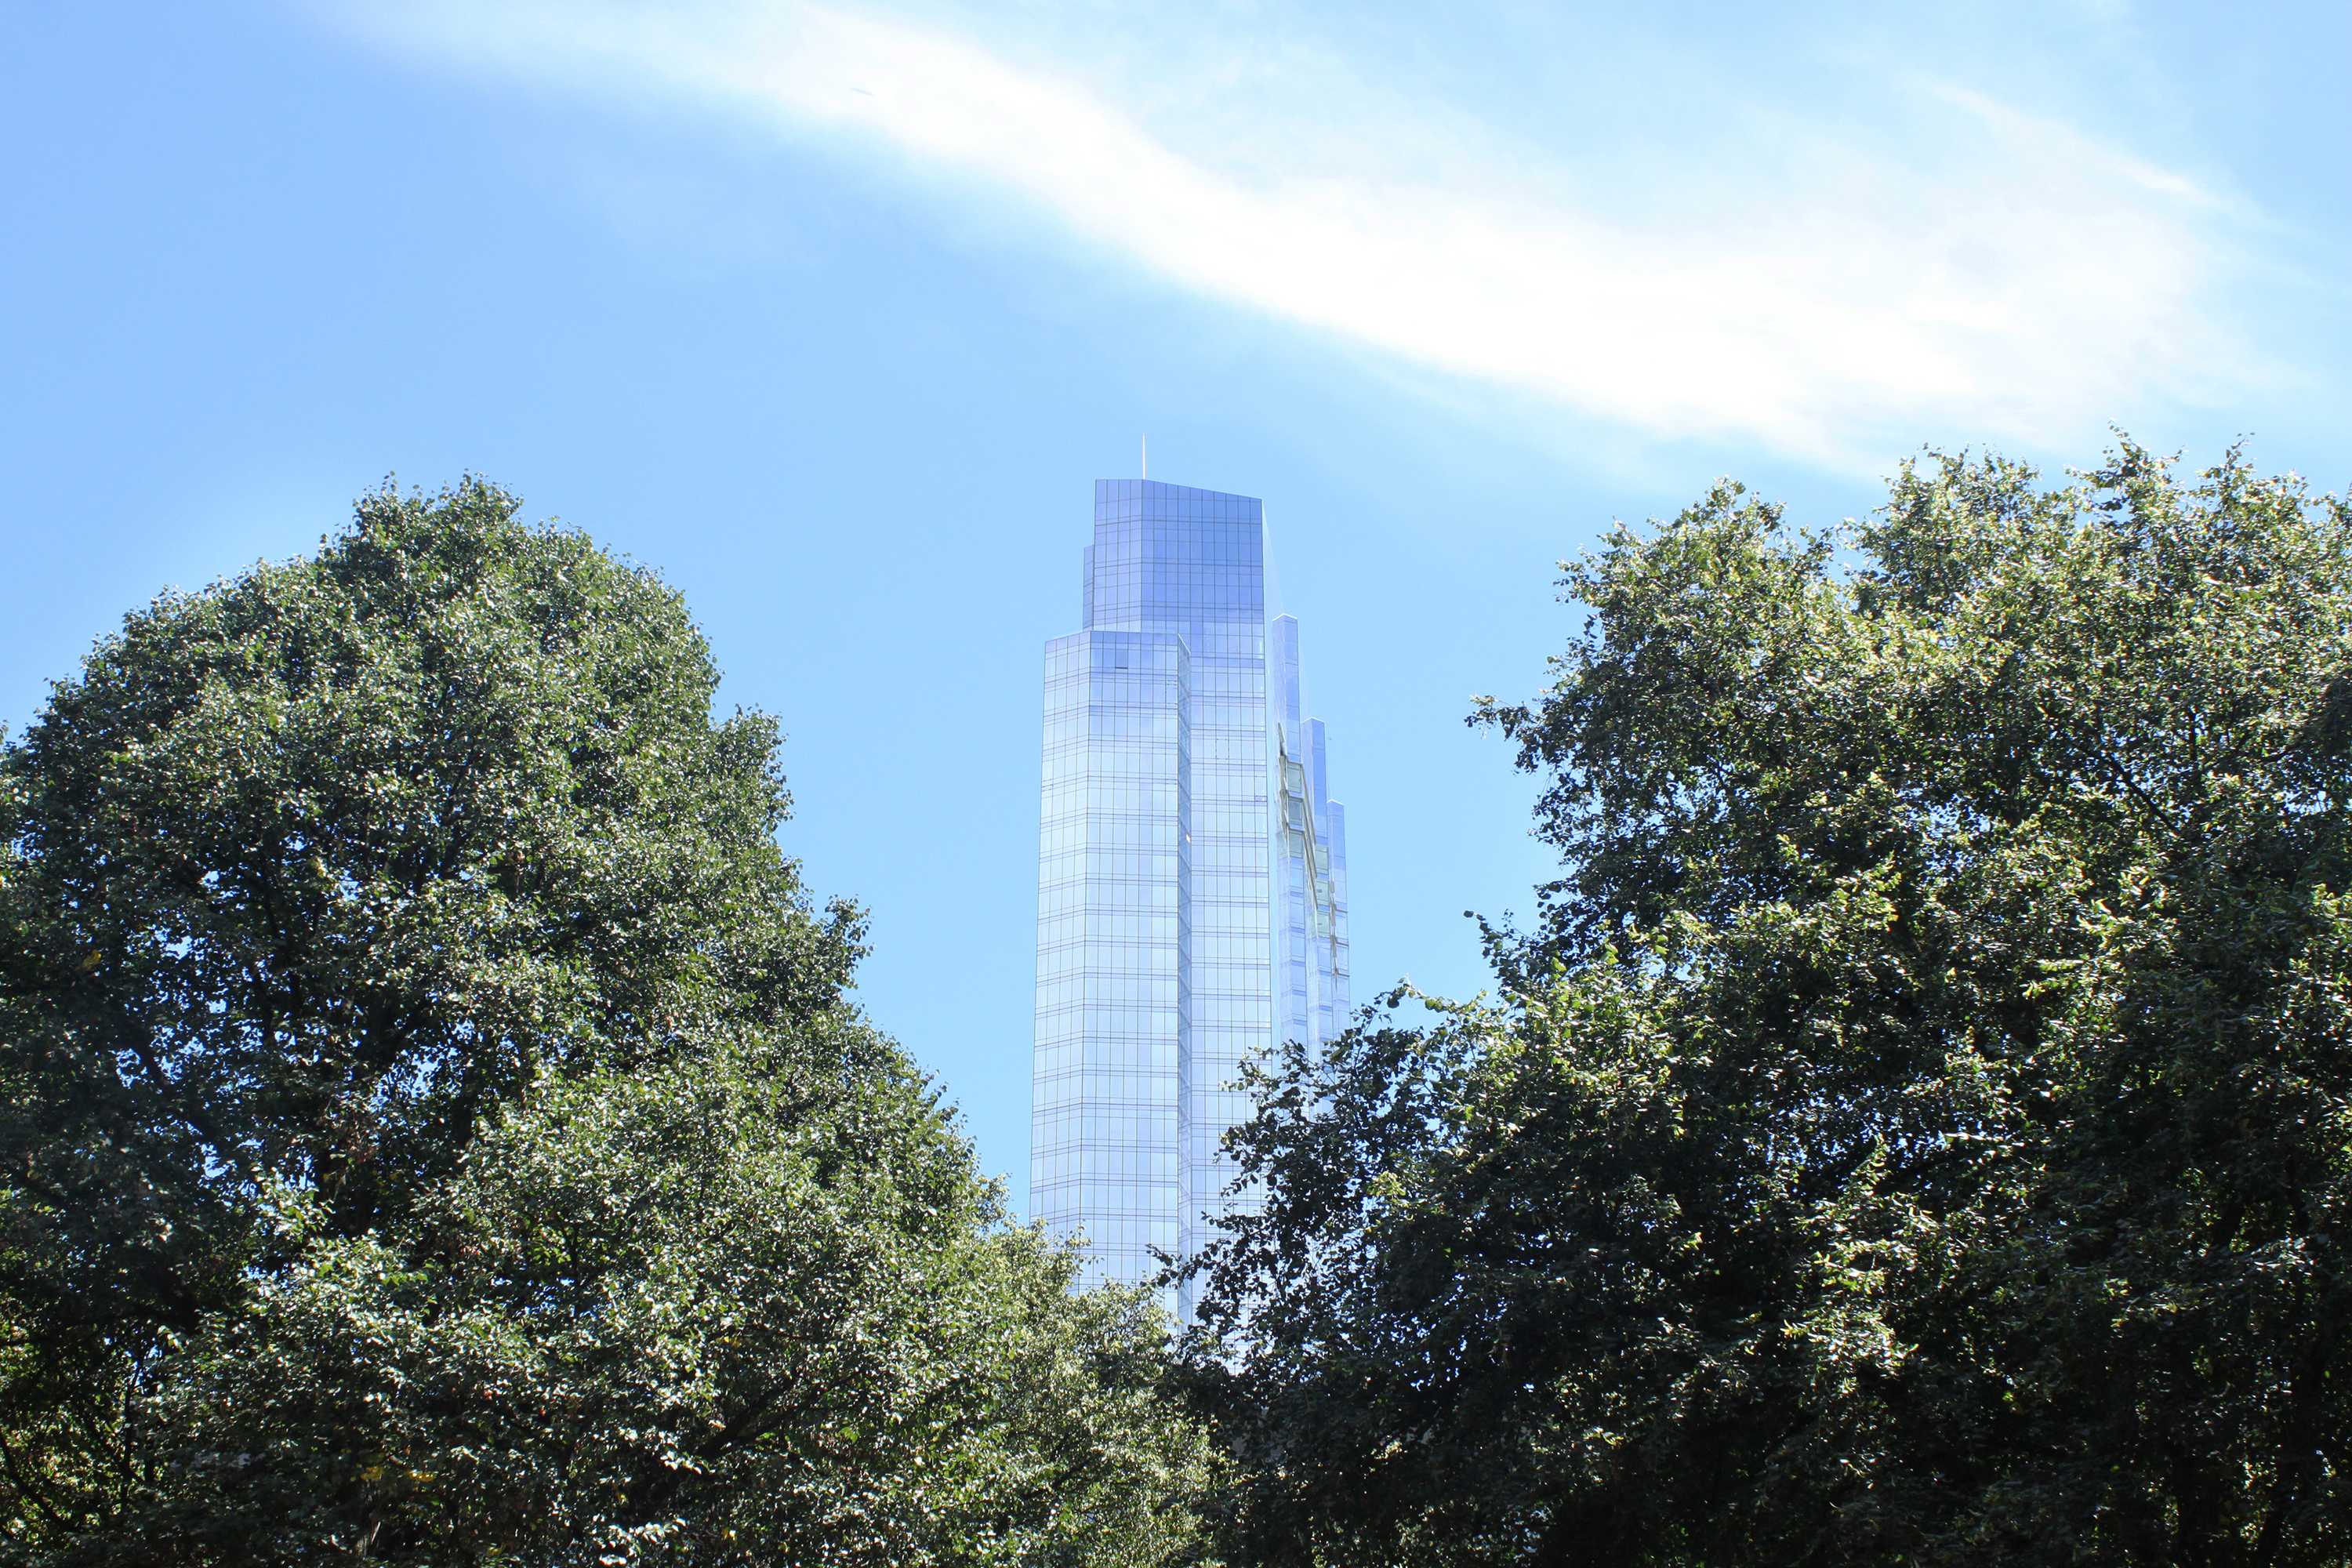 Millenium tower building in Boston, Aerial, Skyline, Office, Outdoor, HQ Photo